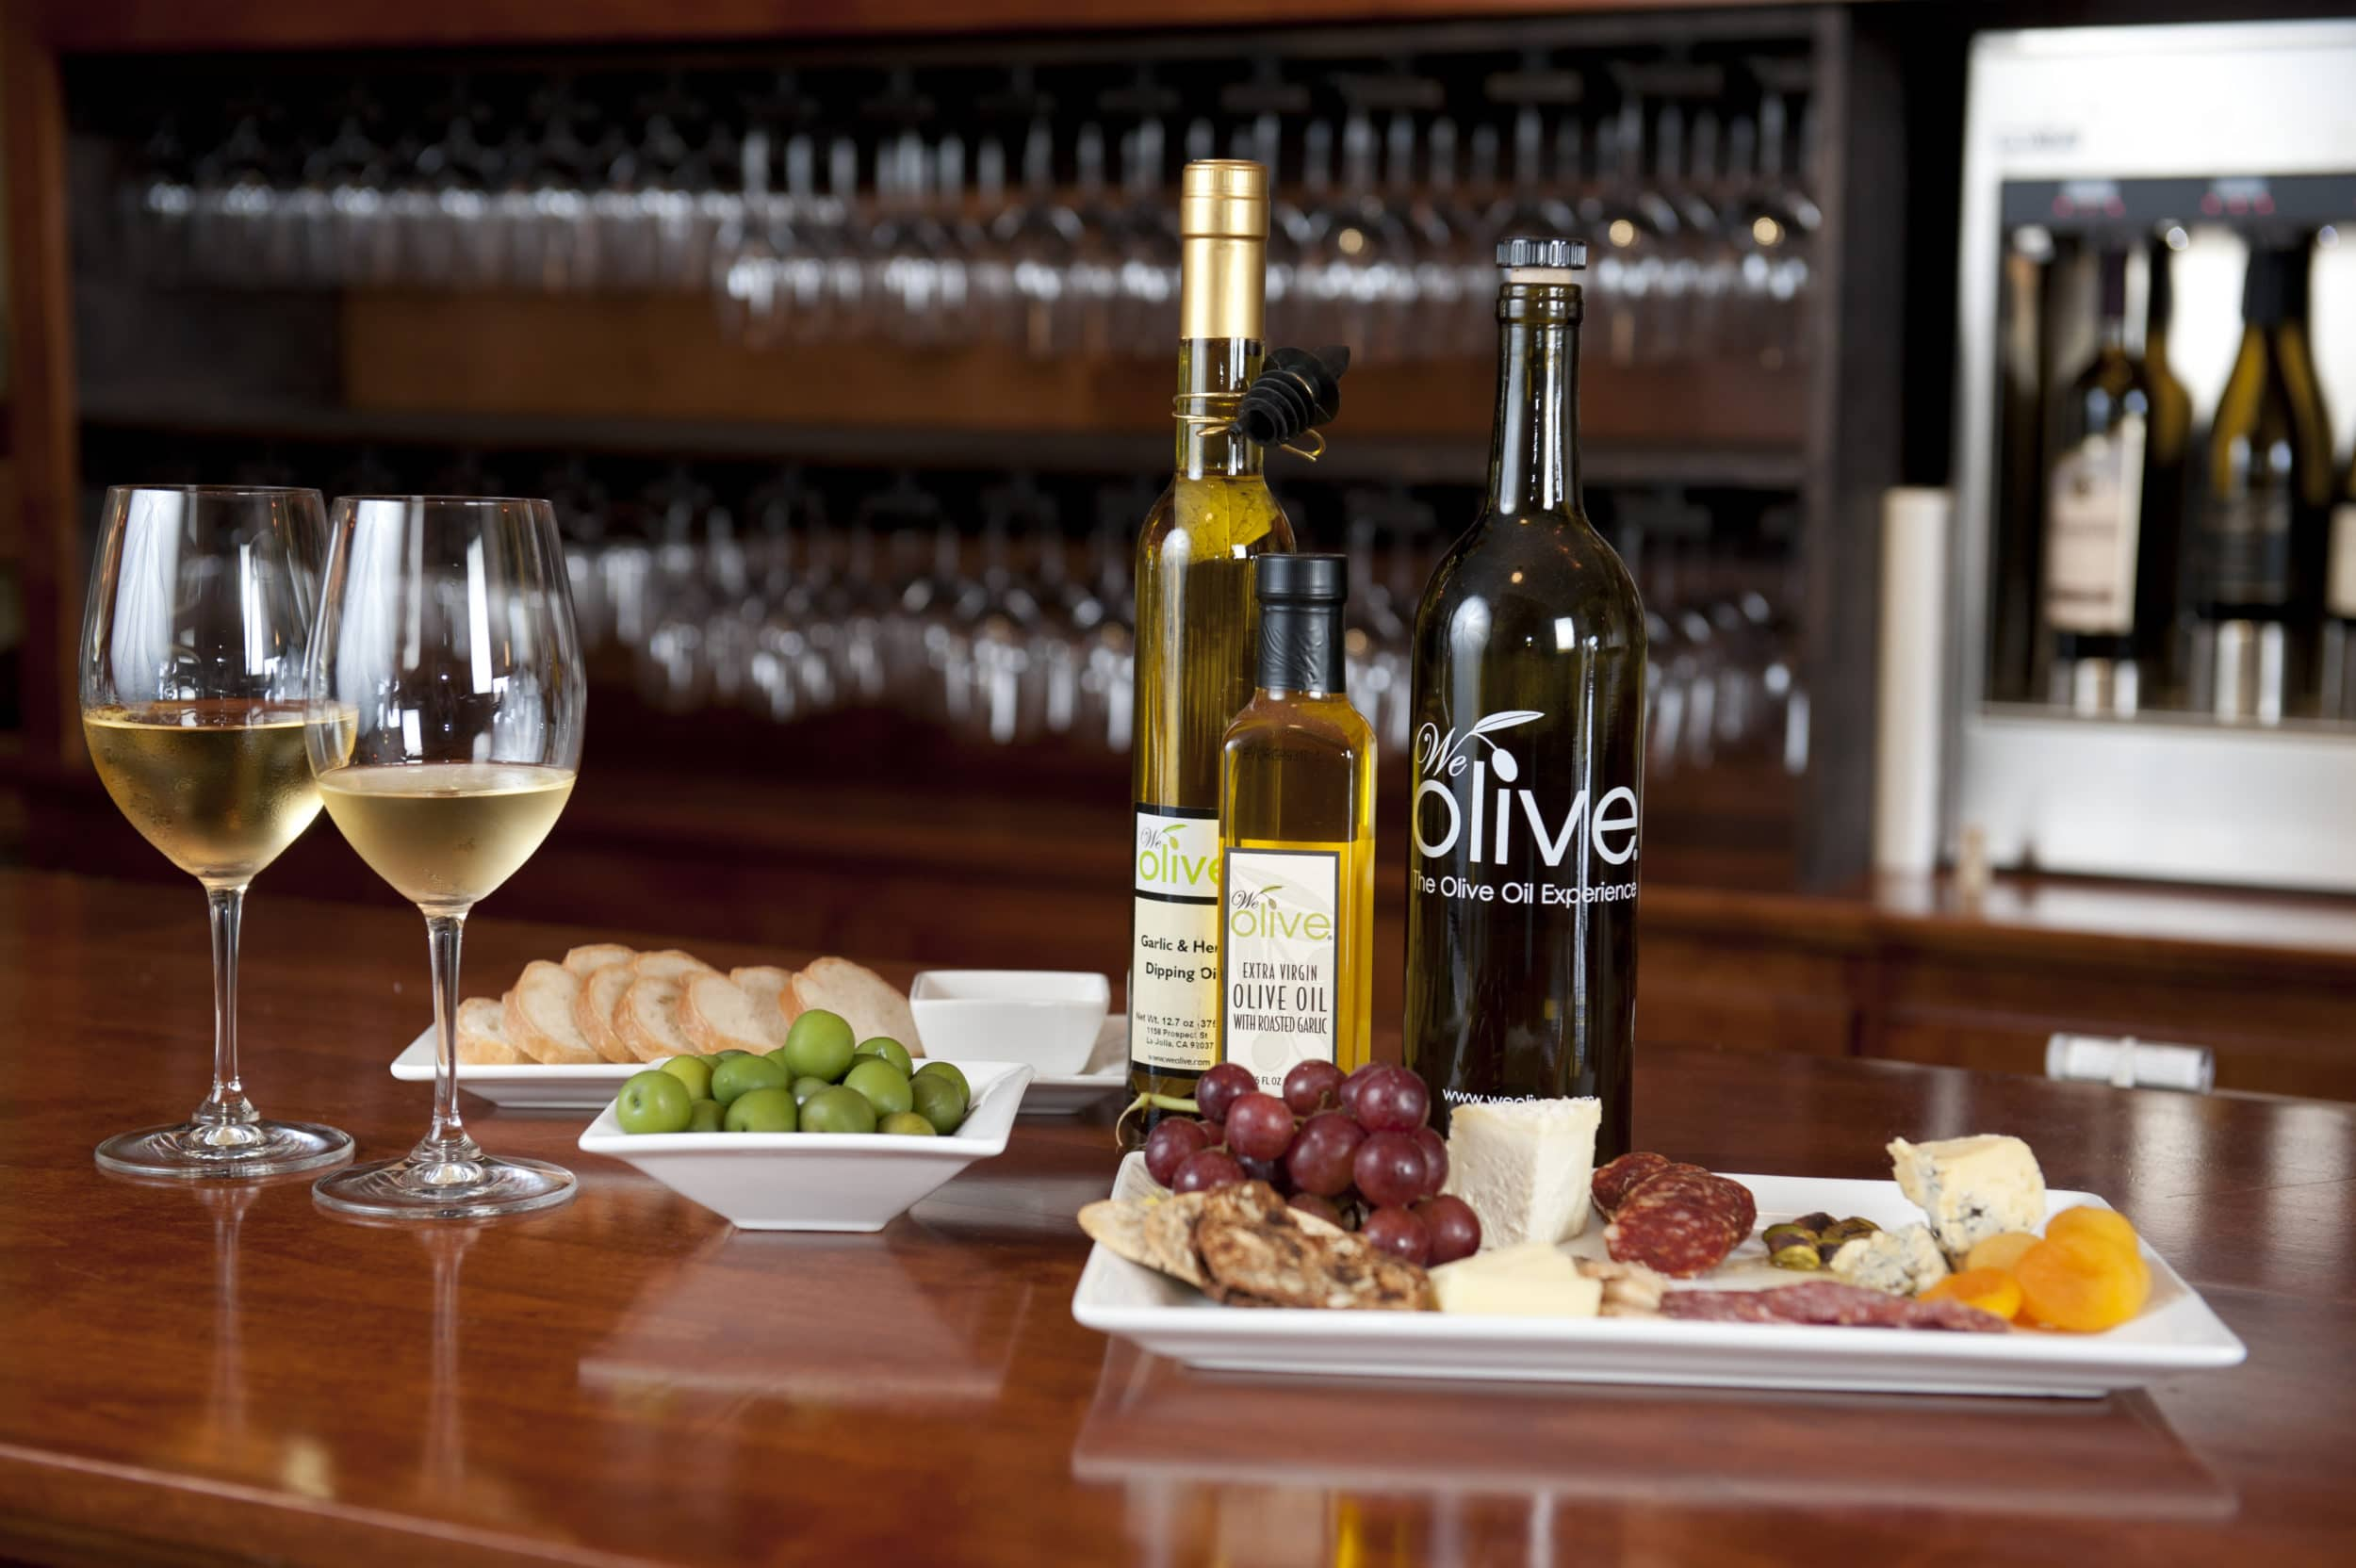 We Olive is great for La Jolla shopping for culinary gifts but the happy hour charcuterie plate and wine pictured here is another reason to go.